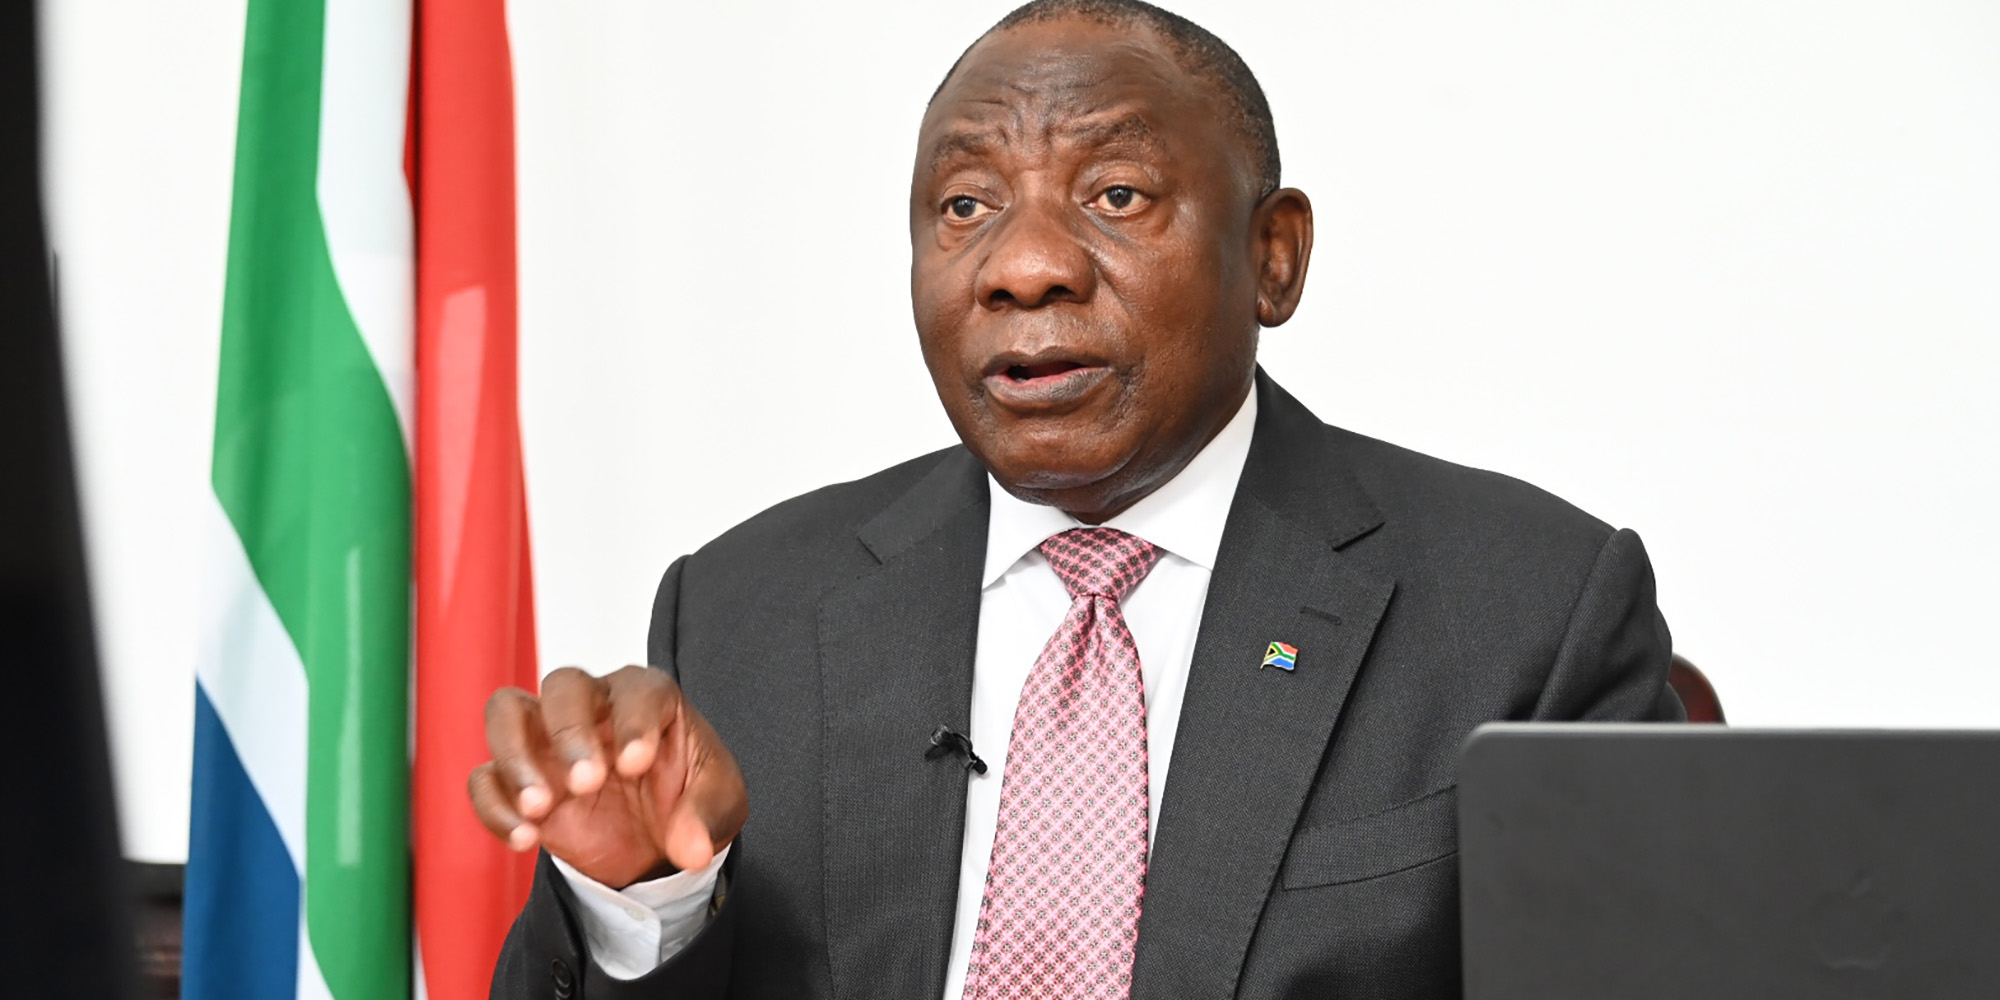 Covid-19: President Ramaphosa moves South Africa to Alert Level Three